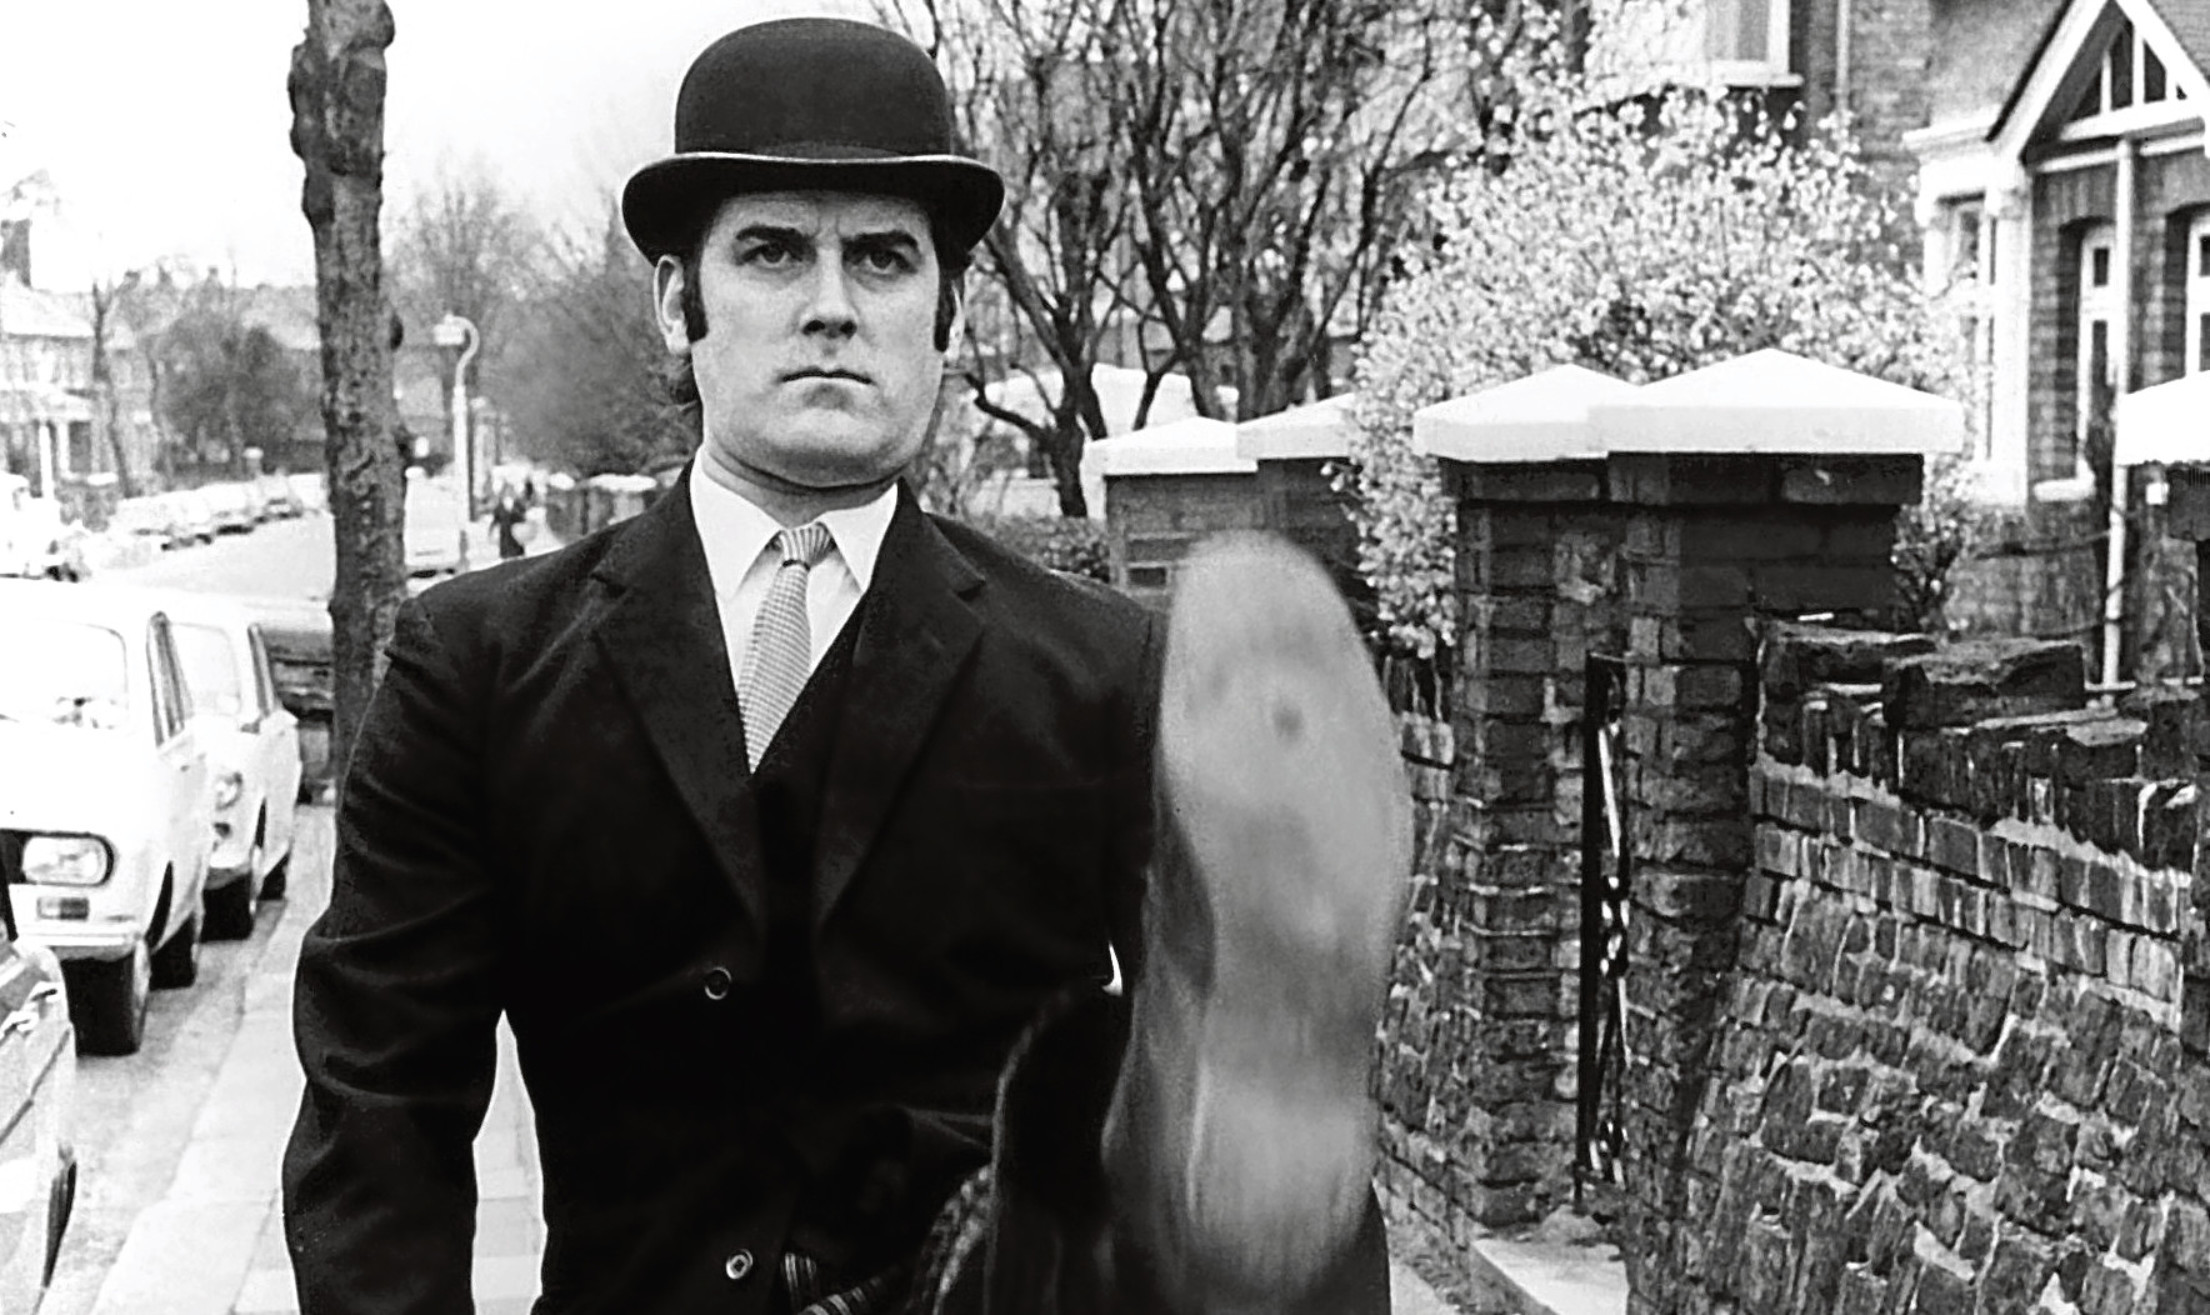 John Cleese really put his foot in it with his comments about the Scots this week, Helen says.